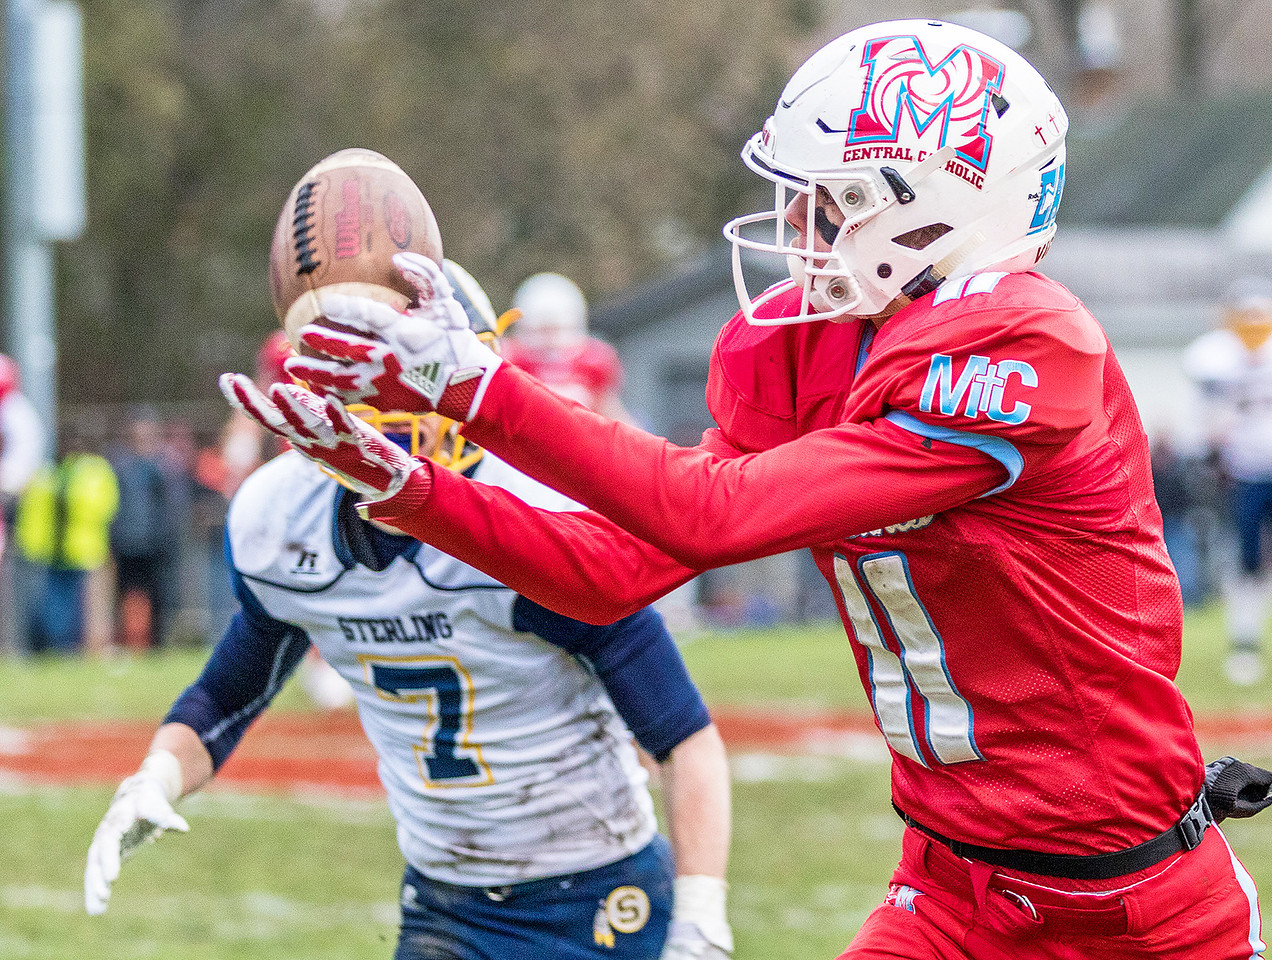 Marian Central Catholic receiver Bryce Radcliffe comes up with an over the shoulder catch setting up the Hurricanes only touchdown during the Class 5A state quarterfinal game Saturday, November 11, 2017 in Woodstock. The Hurricanes come up short falling to Sterling 22-10. KKoontz- For Shaw Media